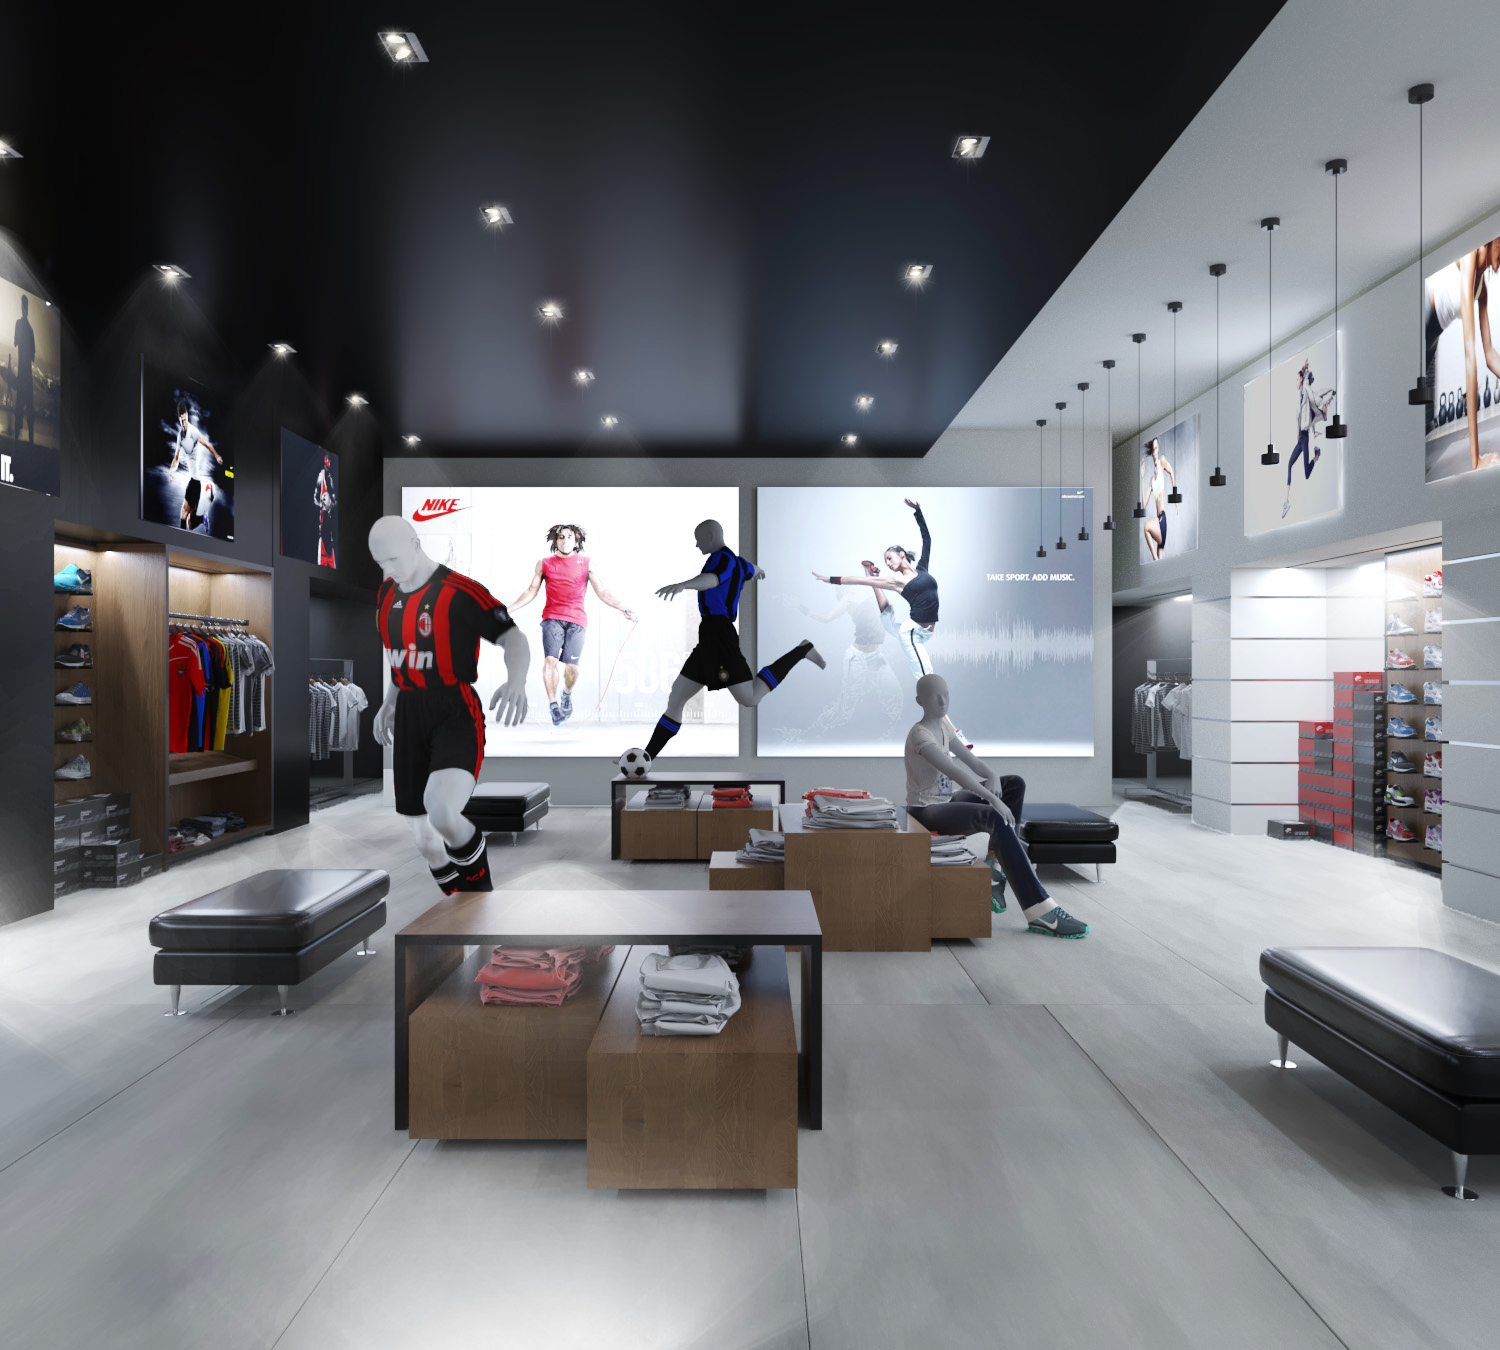 Interior design of a sports shop